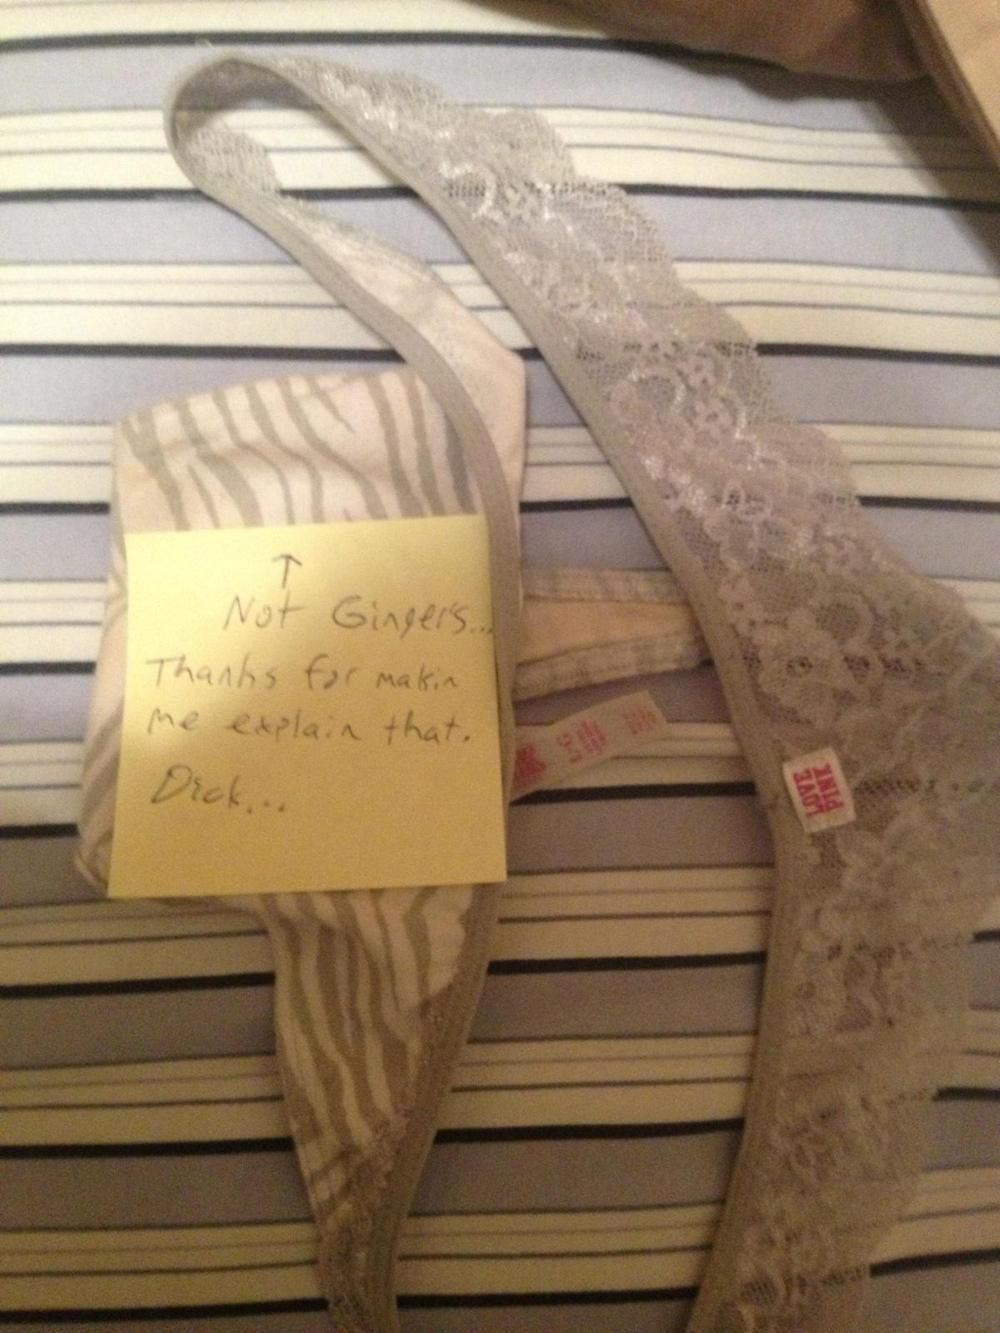 My BF lives with a couple & some times the laundry gets mixed up. He placed these in their room thinking they were the girlfriend's. Her boyfriend left this on his bed. They are mine... - Imgur